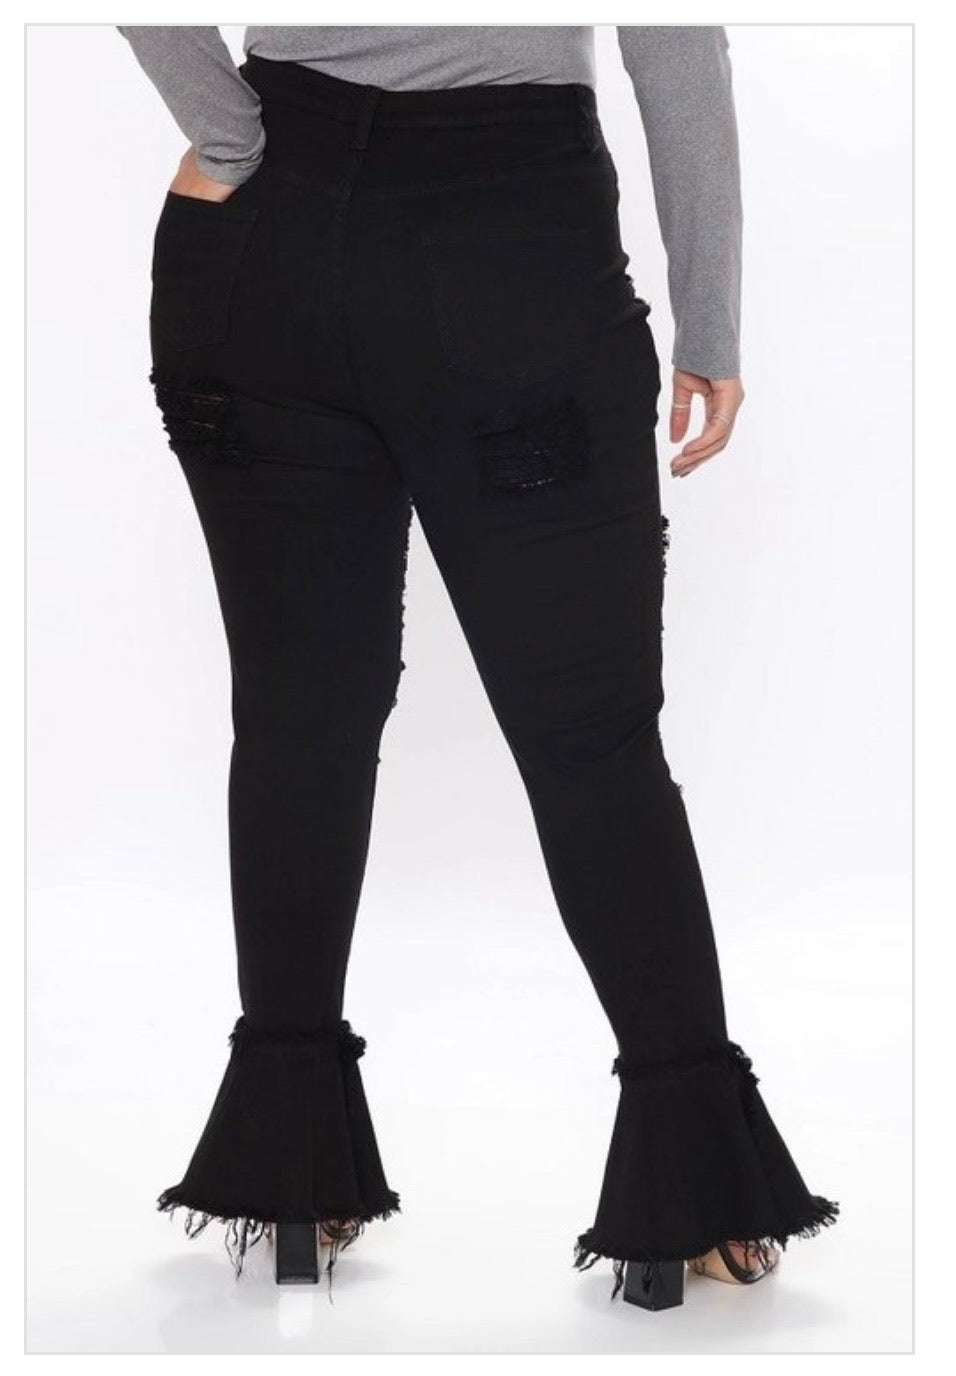 Cute Chill - Plus Size Distressed Flare Jeans (Black)